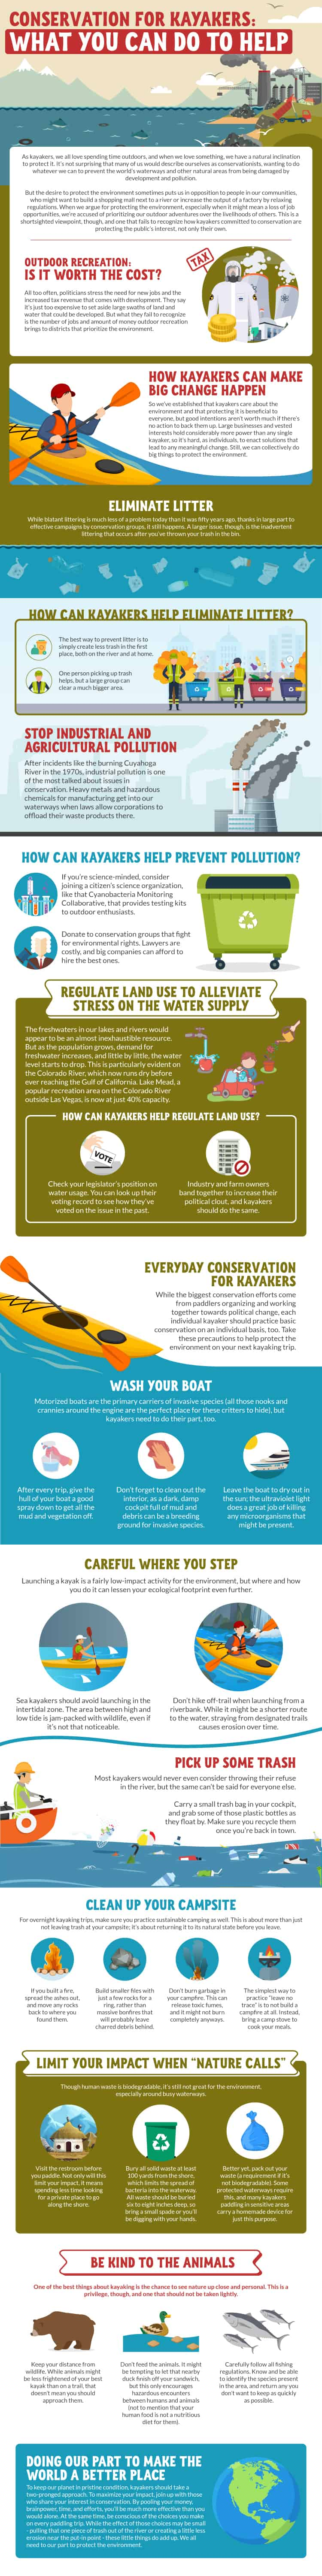 kayaking conservation infographic